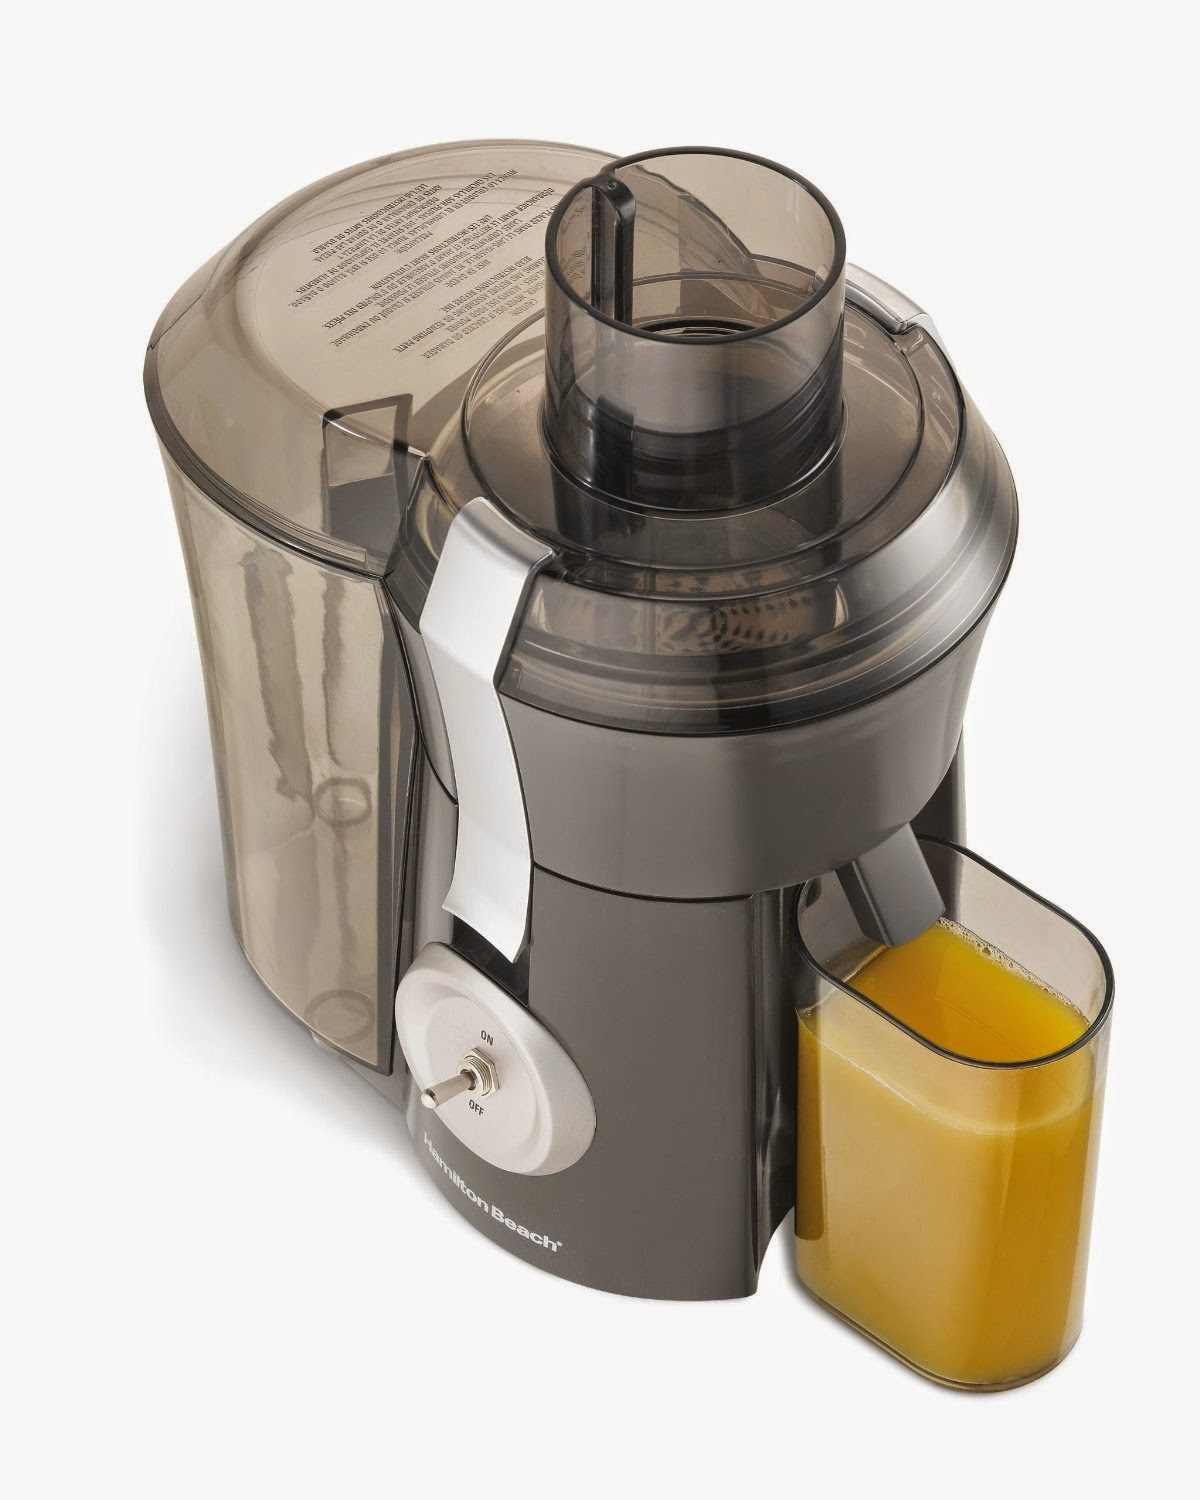 Hamilton Beach 67650A Big Mouth Pro Juice Extractor, low-price with features of a more expensive juicer, powerful 1.1 hp motor, stainless steel cutter/strainer, high juice yield, up to 24% more juice than its leading competitor